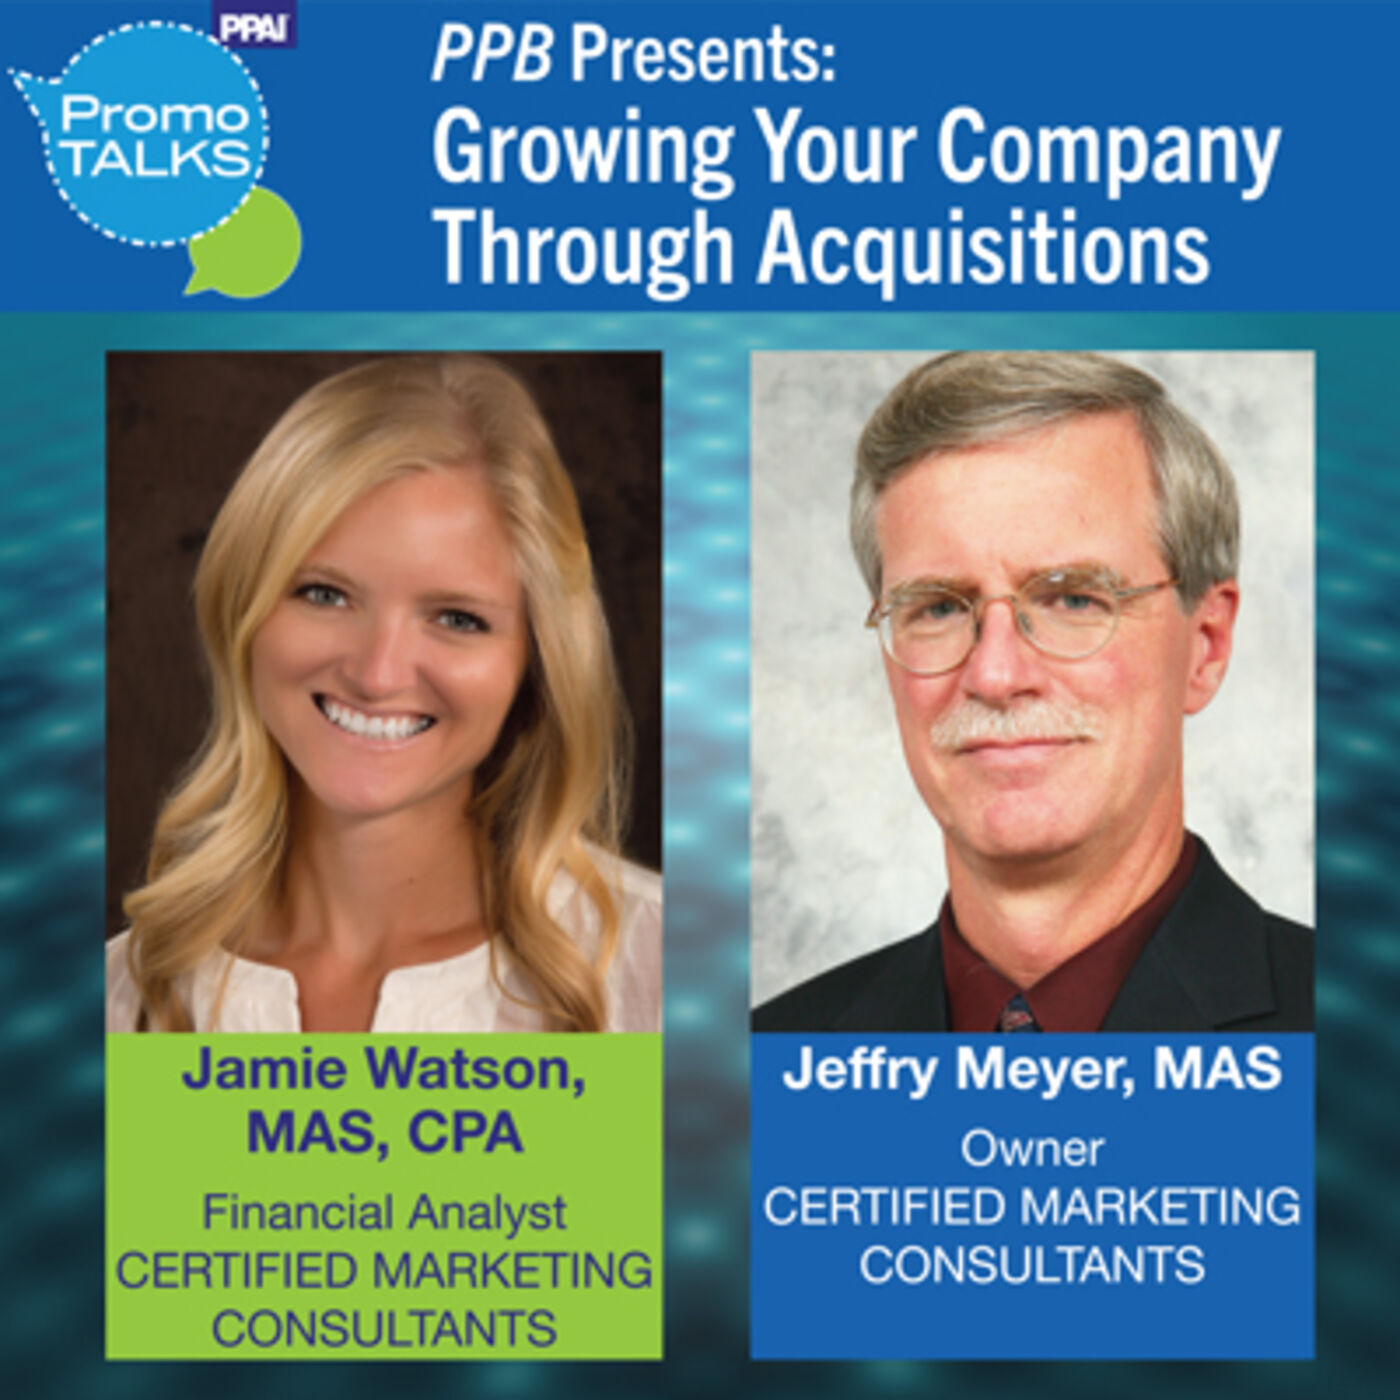 PPB Presents: Growing Your Business Through Acquisitions